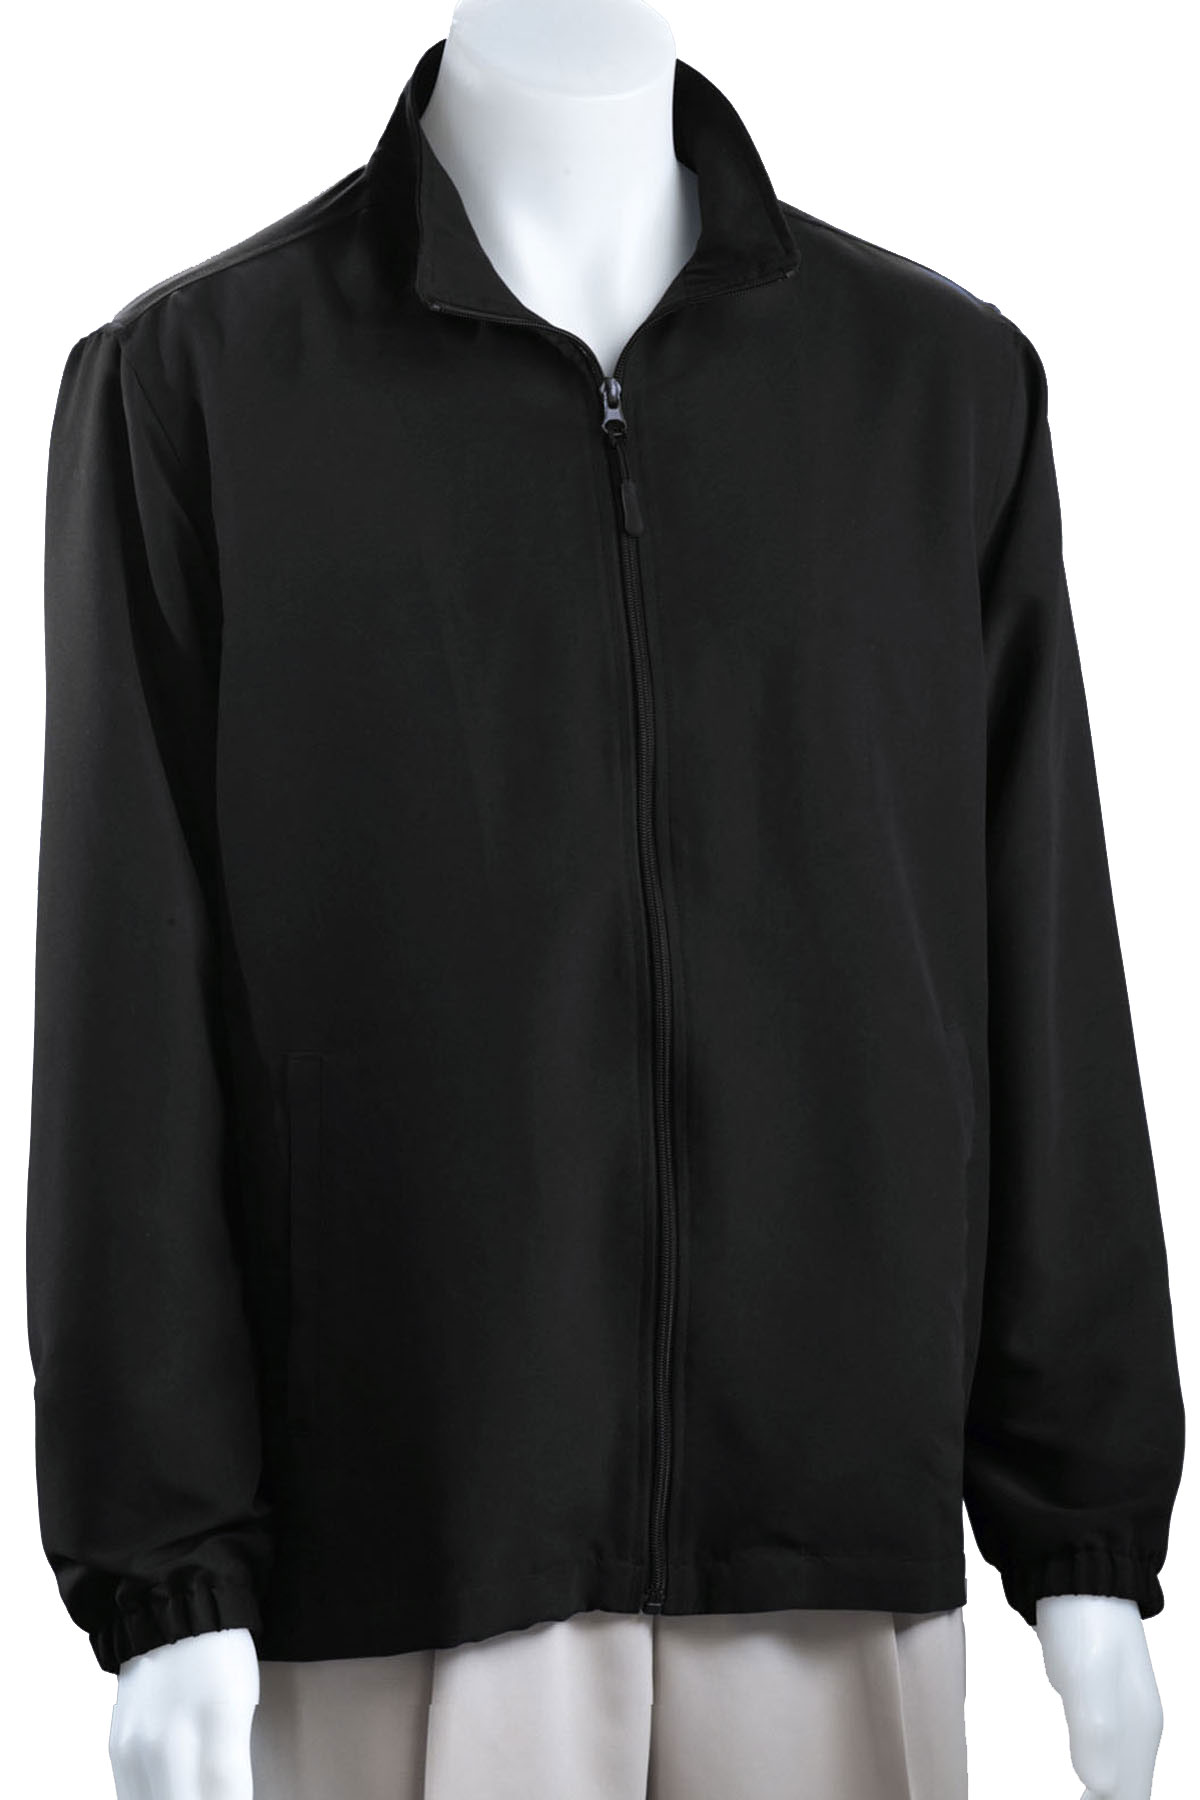 Greg Norman Adult Full Zip Windbreaker